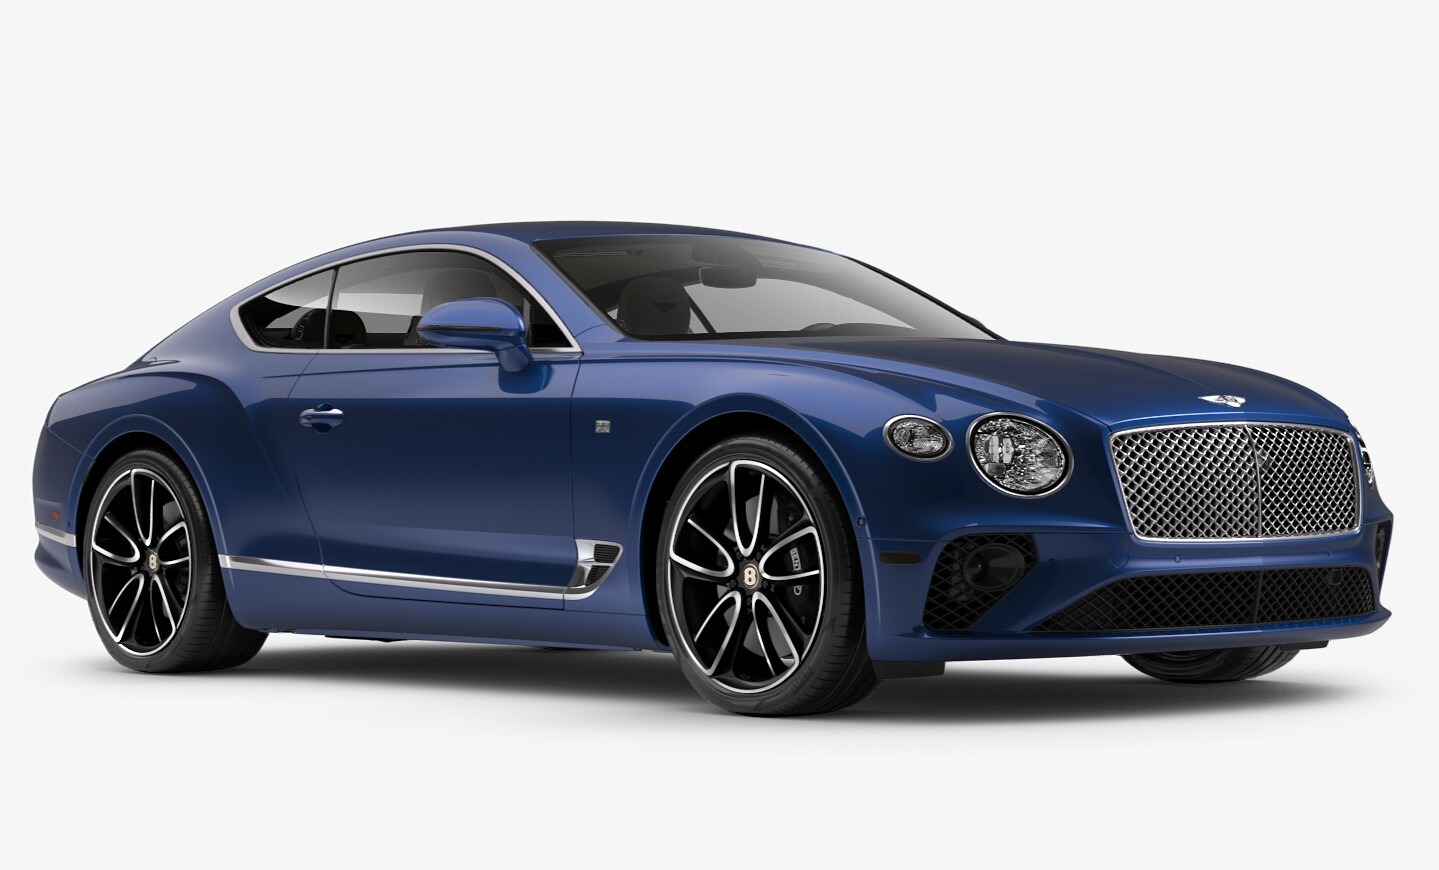 2020 Bentley Continental Gt V8 Stock 20n074728 For Sale Near Vienna Va Va Bentley Dealer For Sale In Vienna Va 20n074728 Exclusive Automotive Group